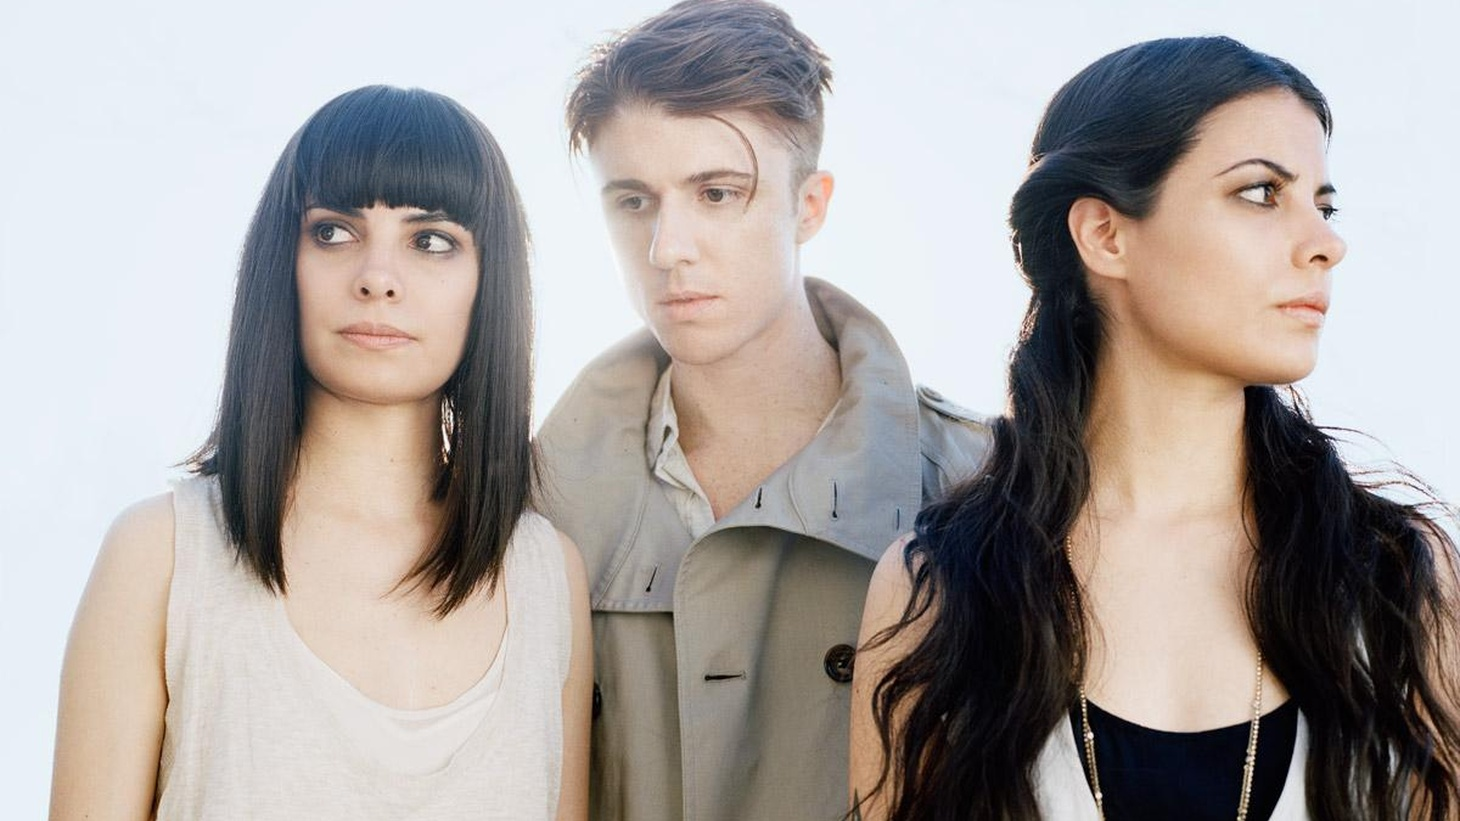 The new record from ethereal fuzz-pop trio School of Seven Bells is one of our favorites. We're excited to welcome them back to Morning Becomes Eclectic airwaves for a live session at 11:15am.